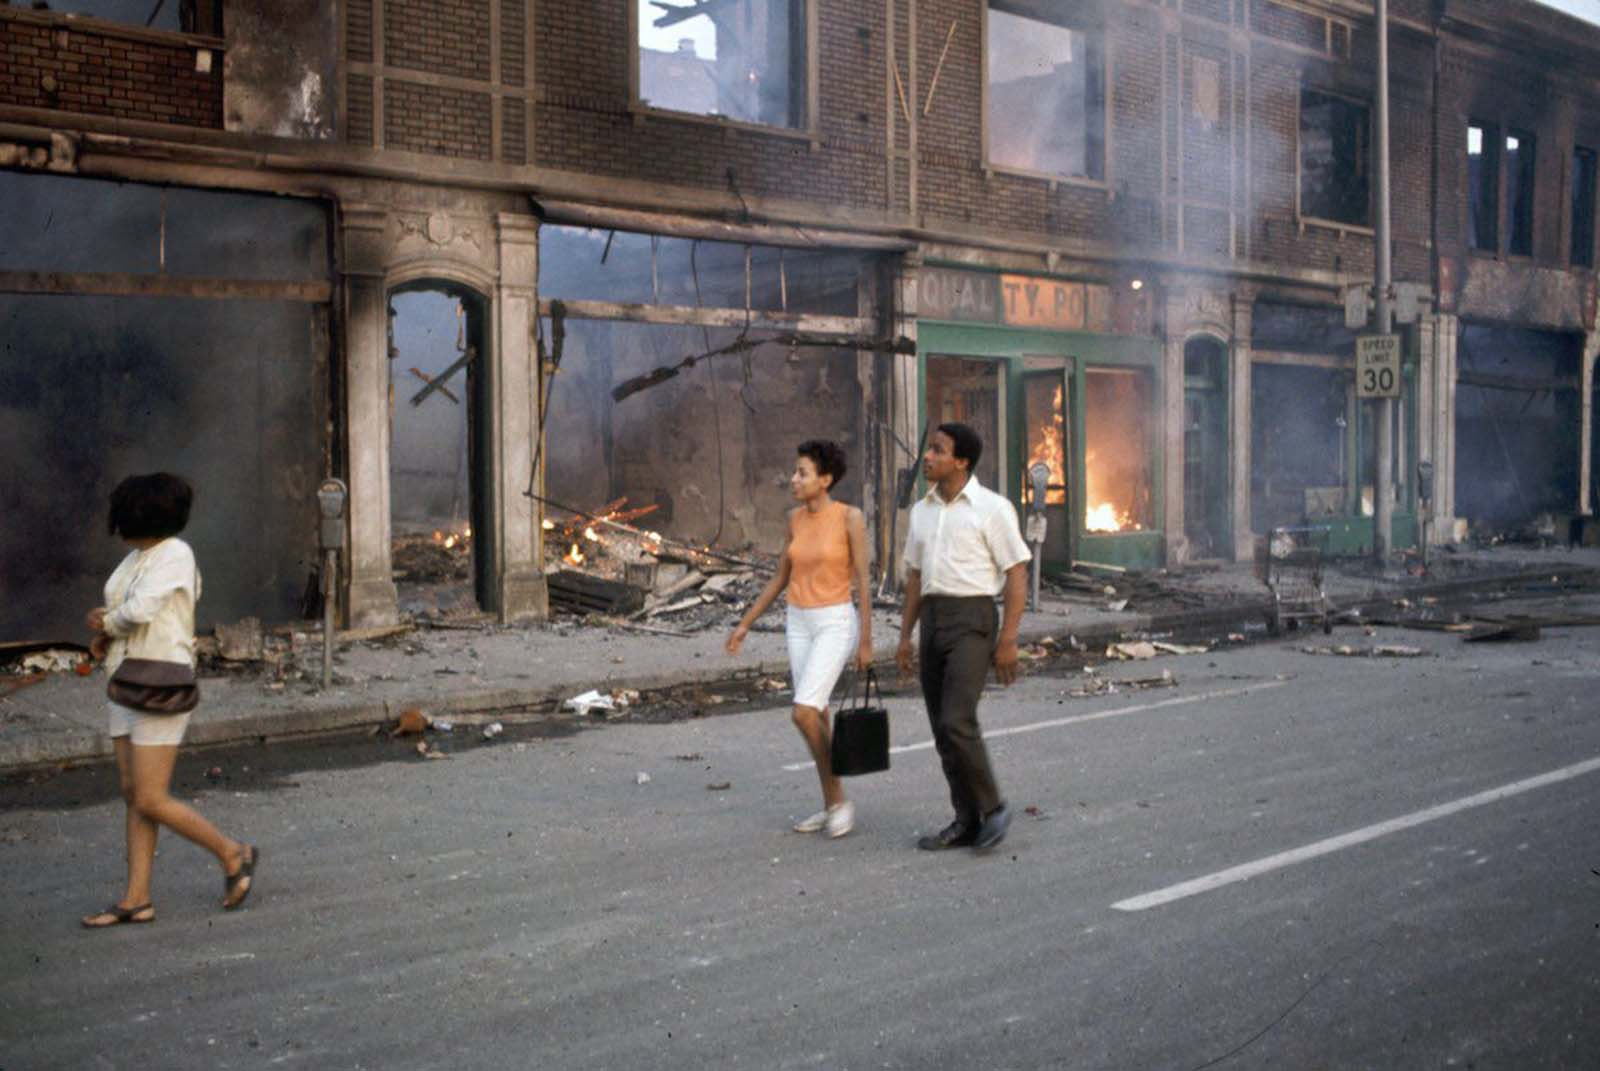 Detroit residents stroll the burning streets.